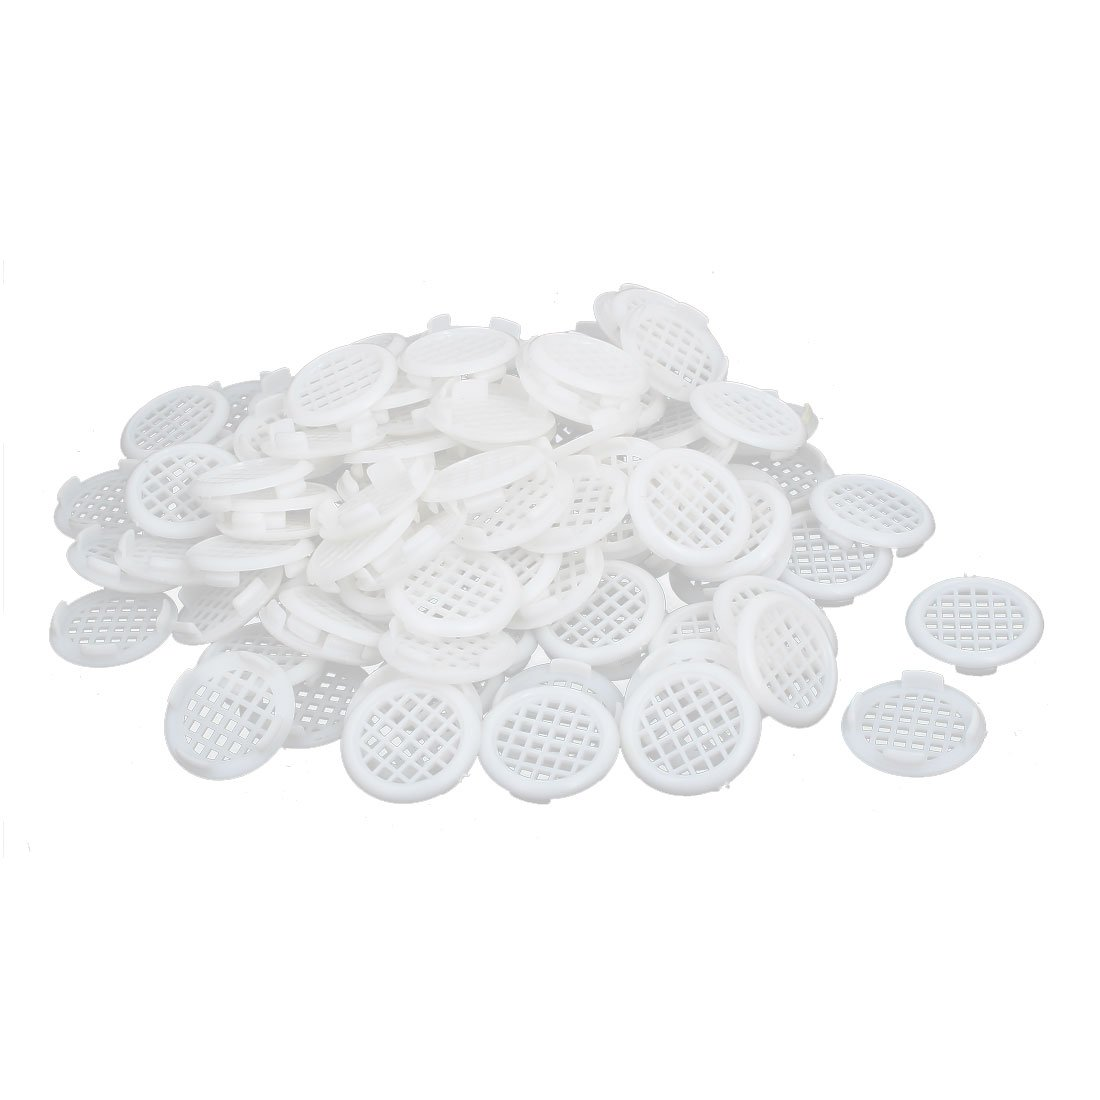 uxcell Shoes Cabinet 31mm Dia Plastic Square Mesh Hole Air Vent Louver Cover White 100pcs